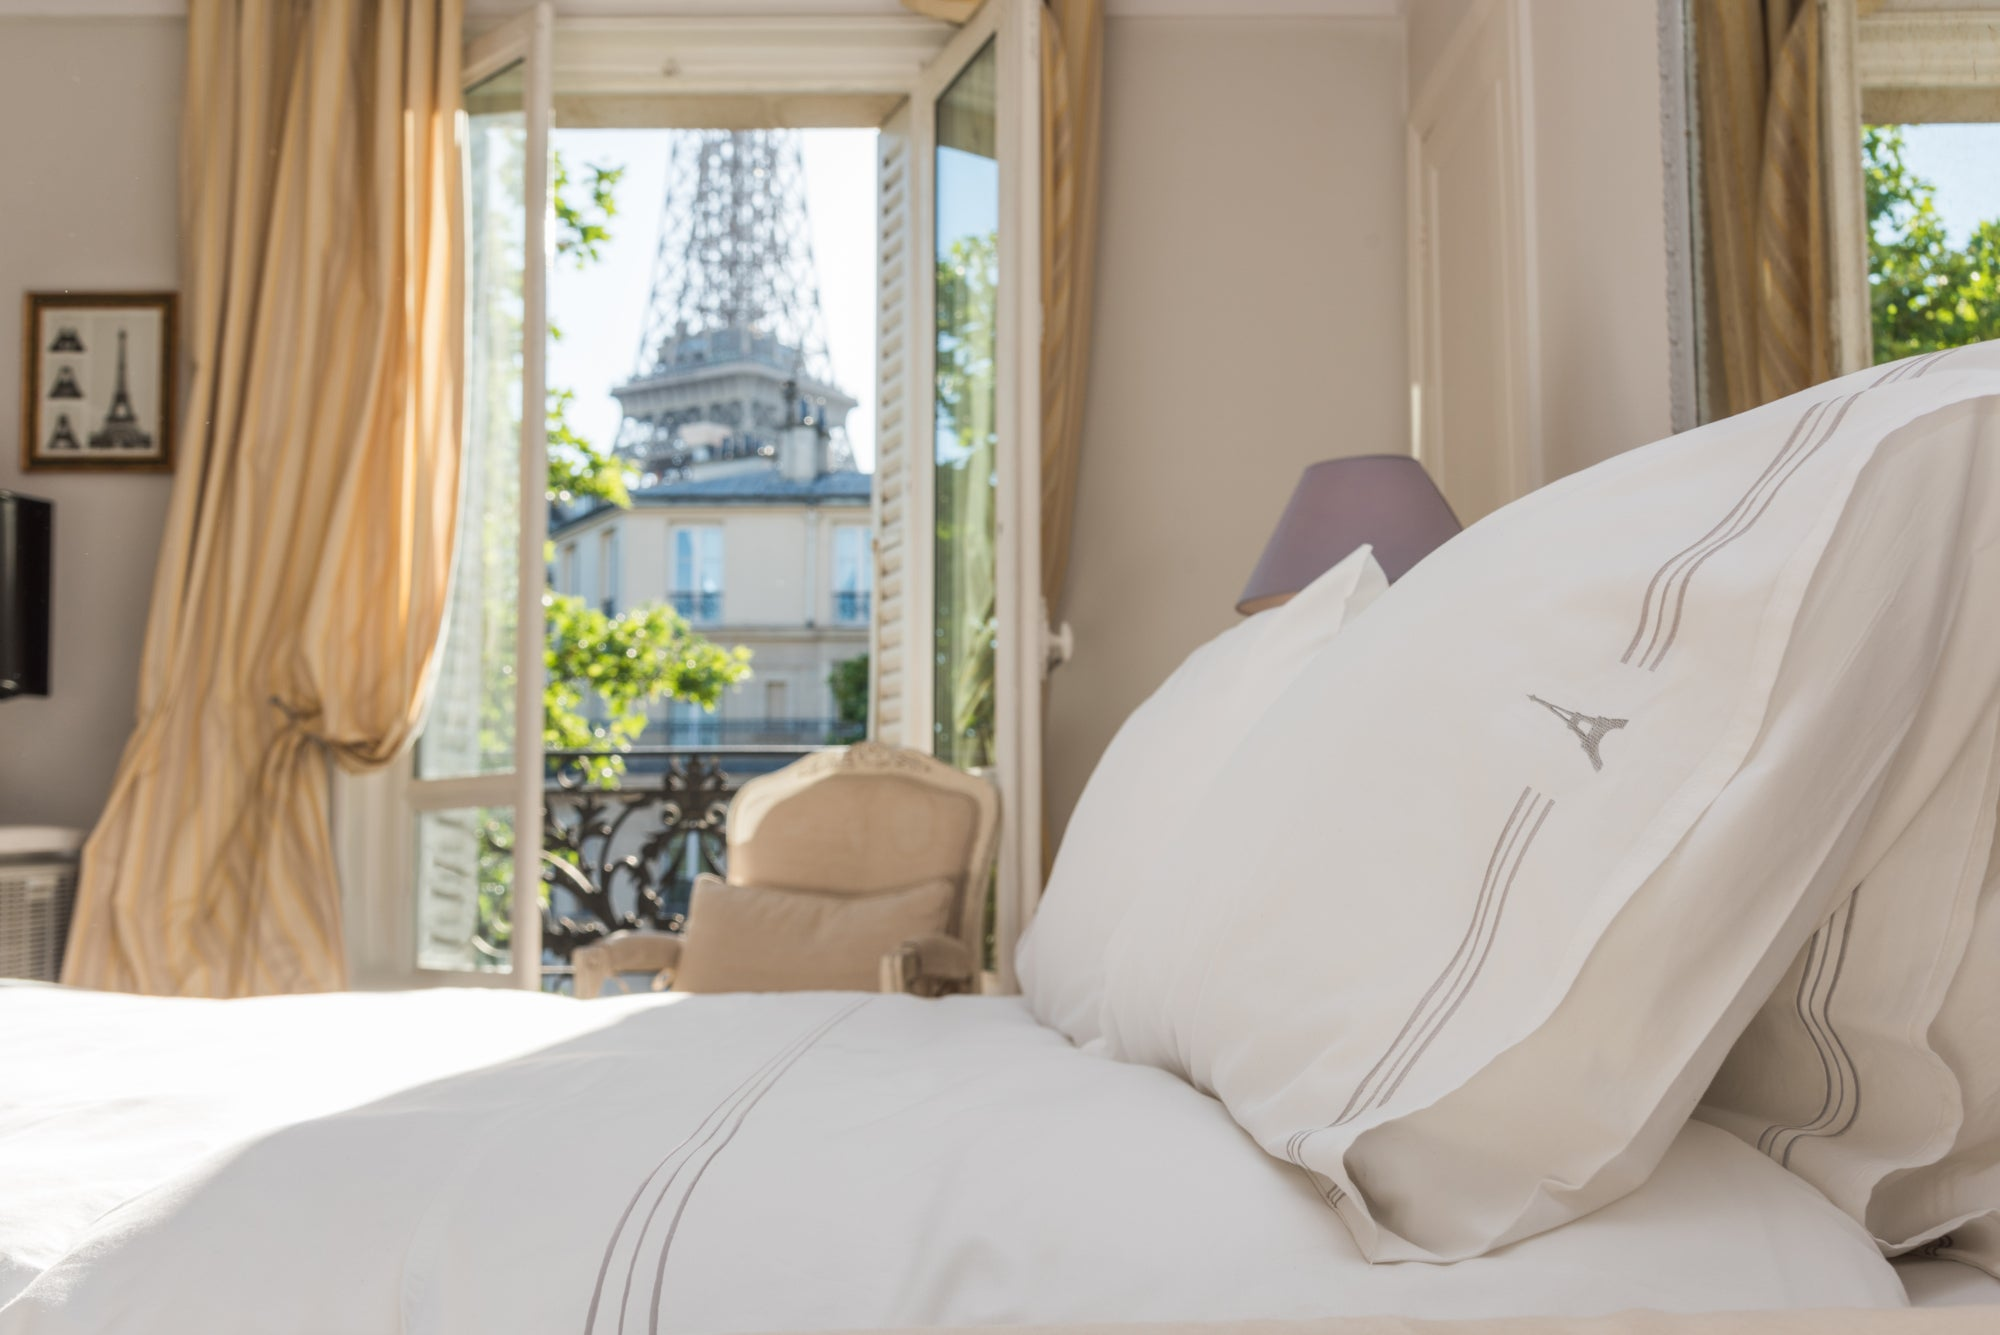 Eiffel Tower Luxury Standard Pillow Cases (Set of 2)